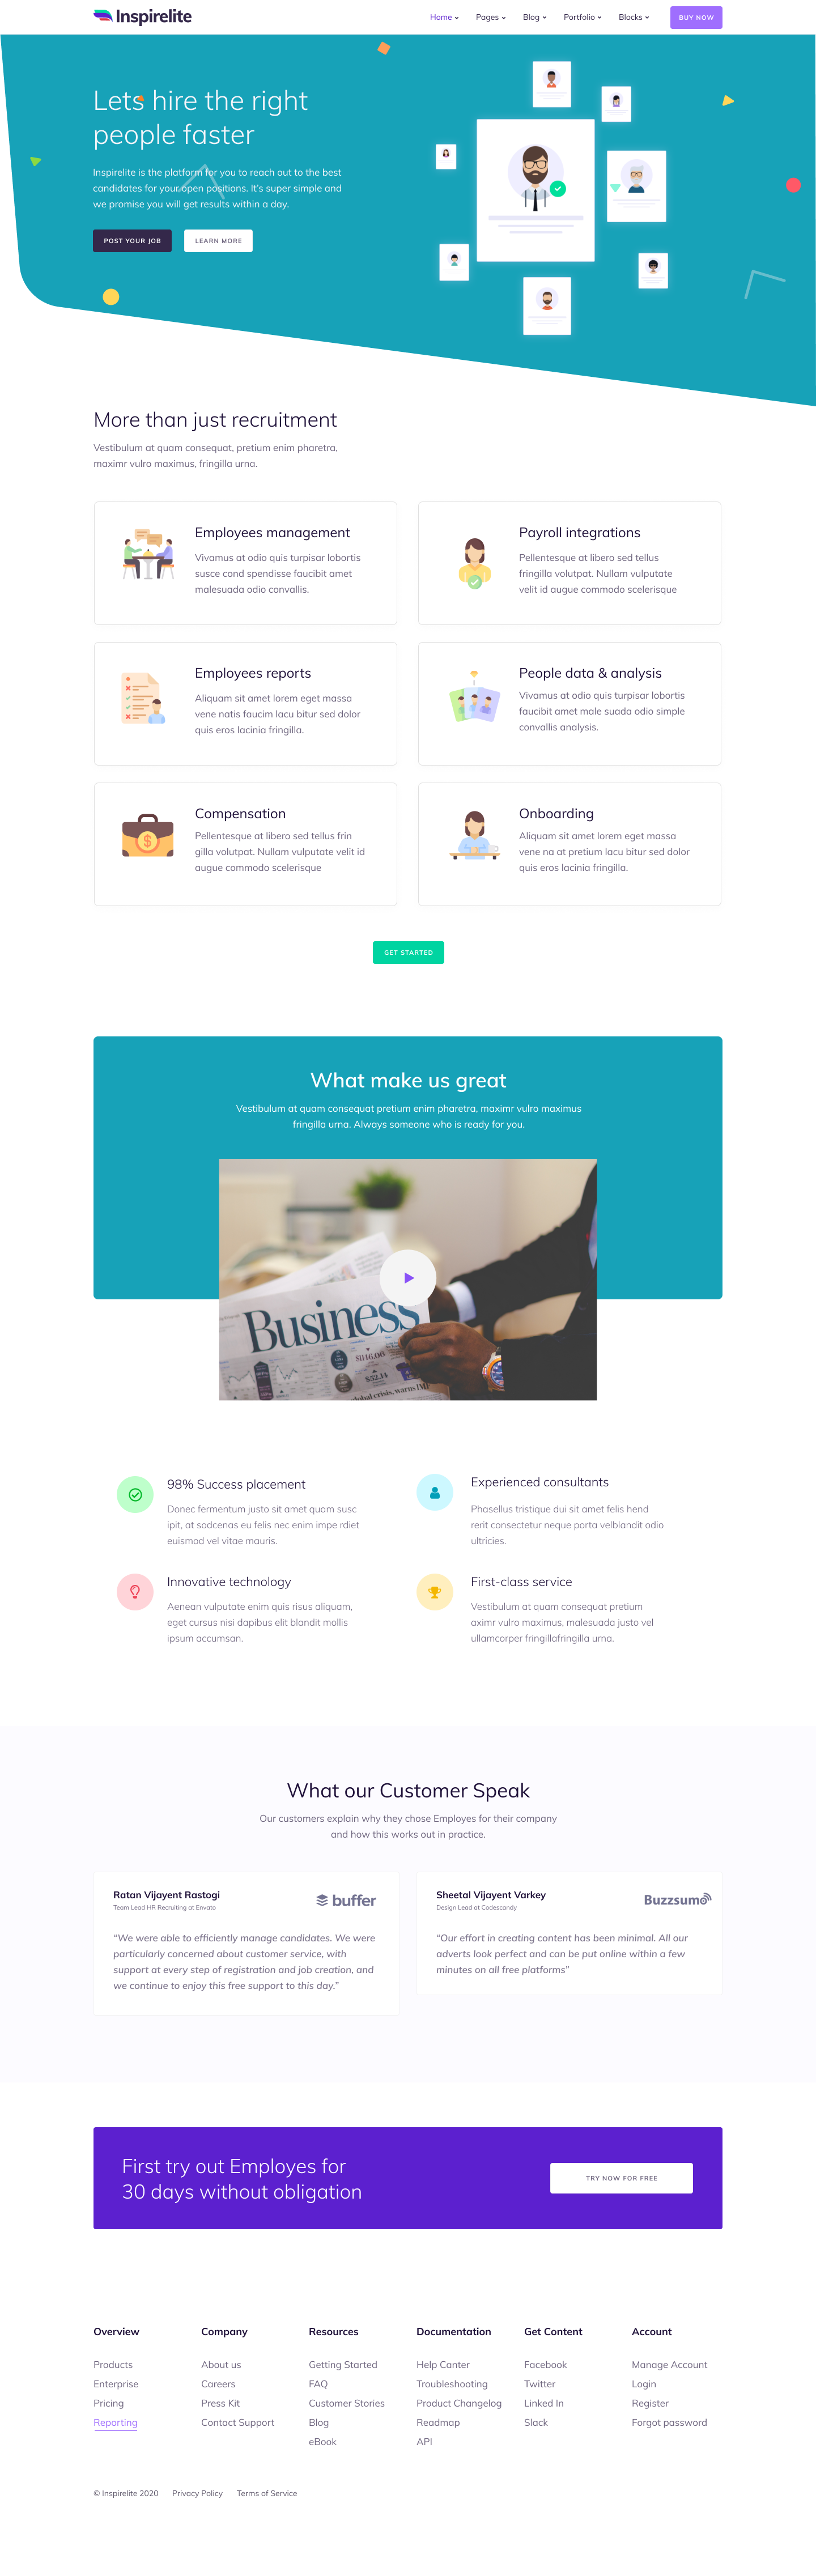 Hr Service Landing Page Template 2020 High Converting Leads In 2020 Website Design Consulting Website Website Template